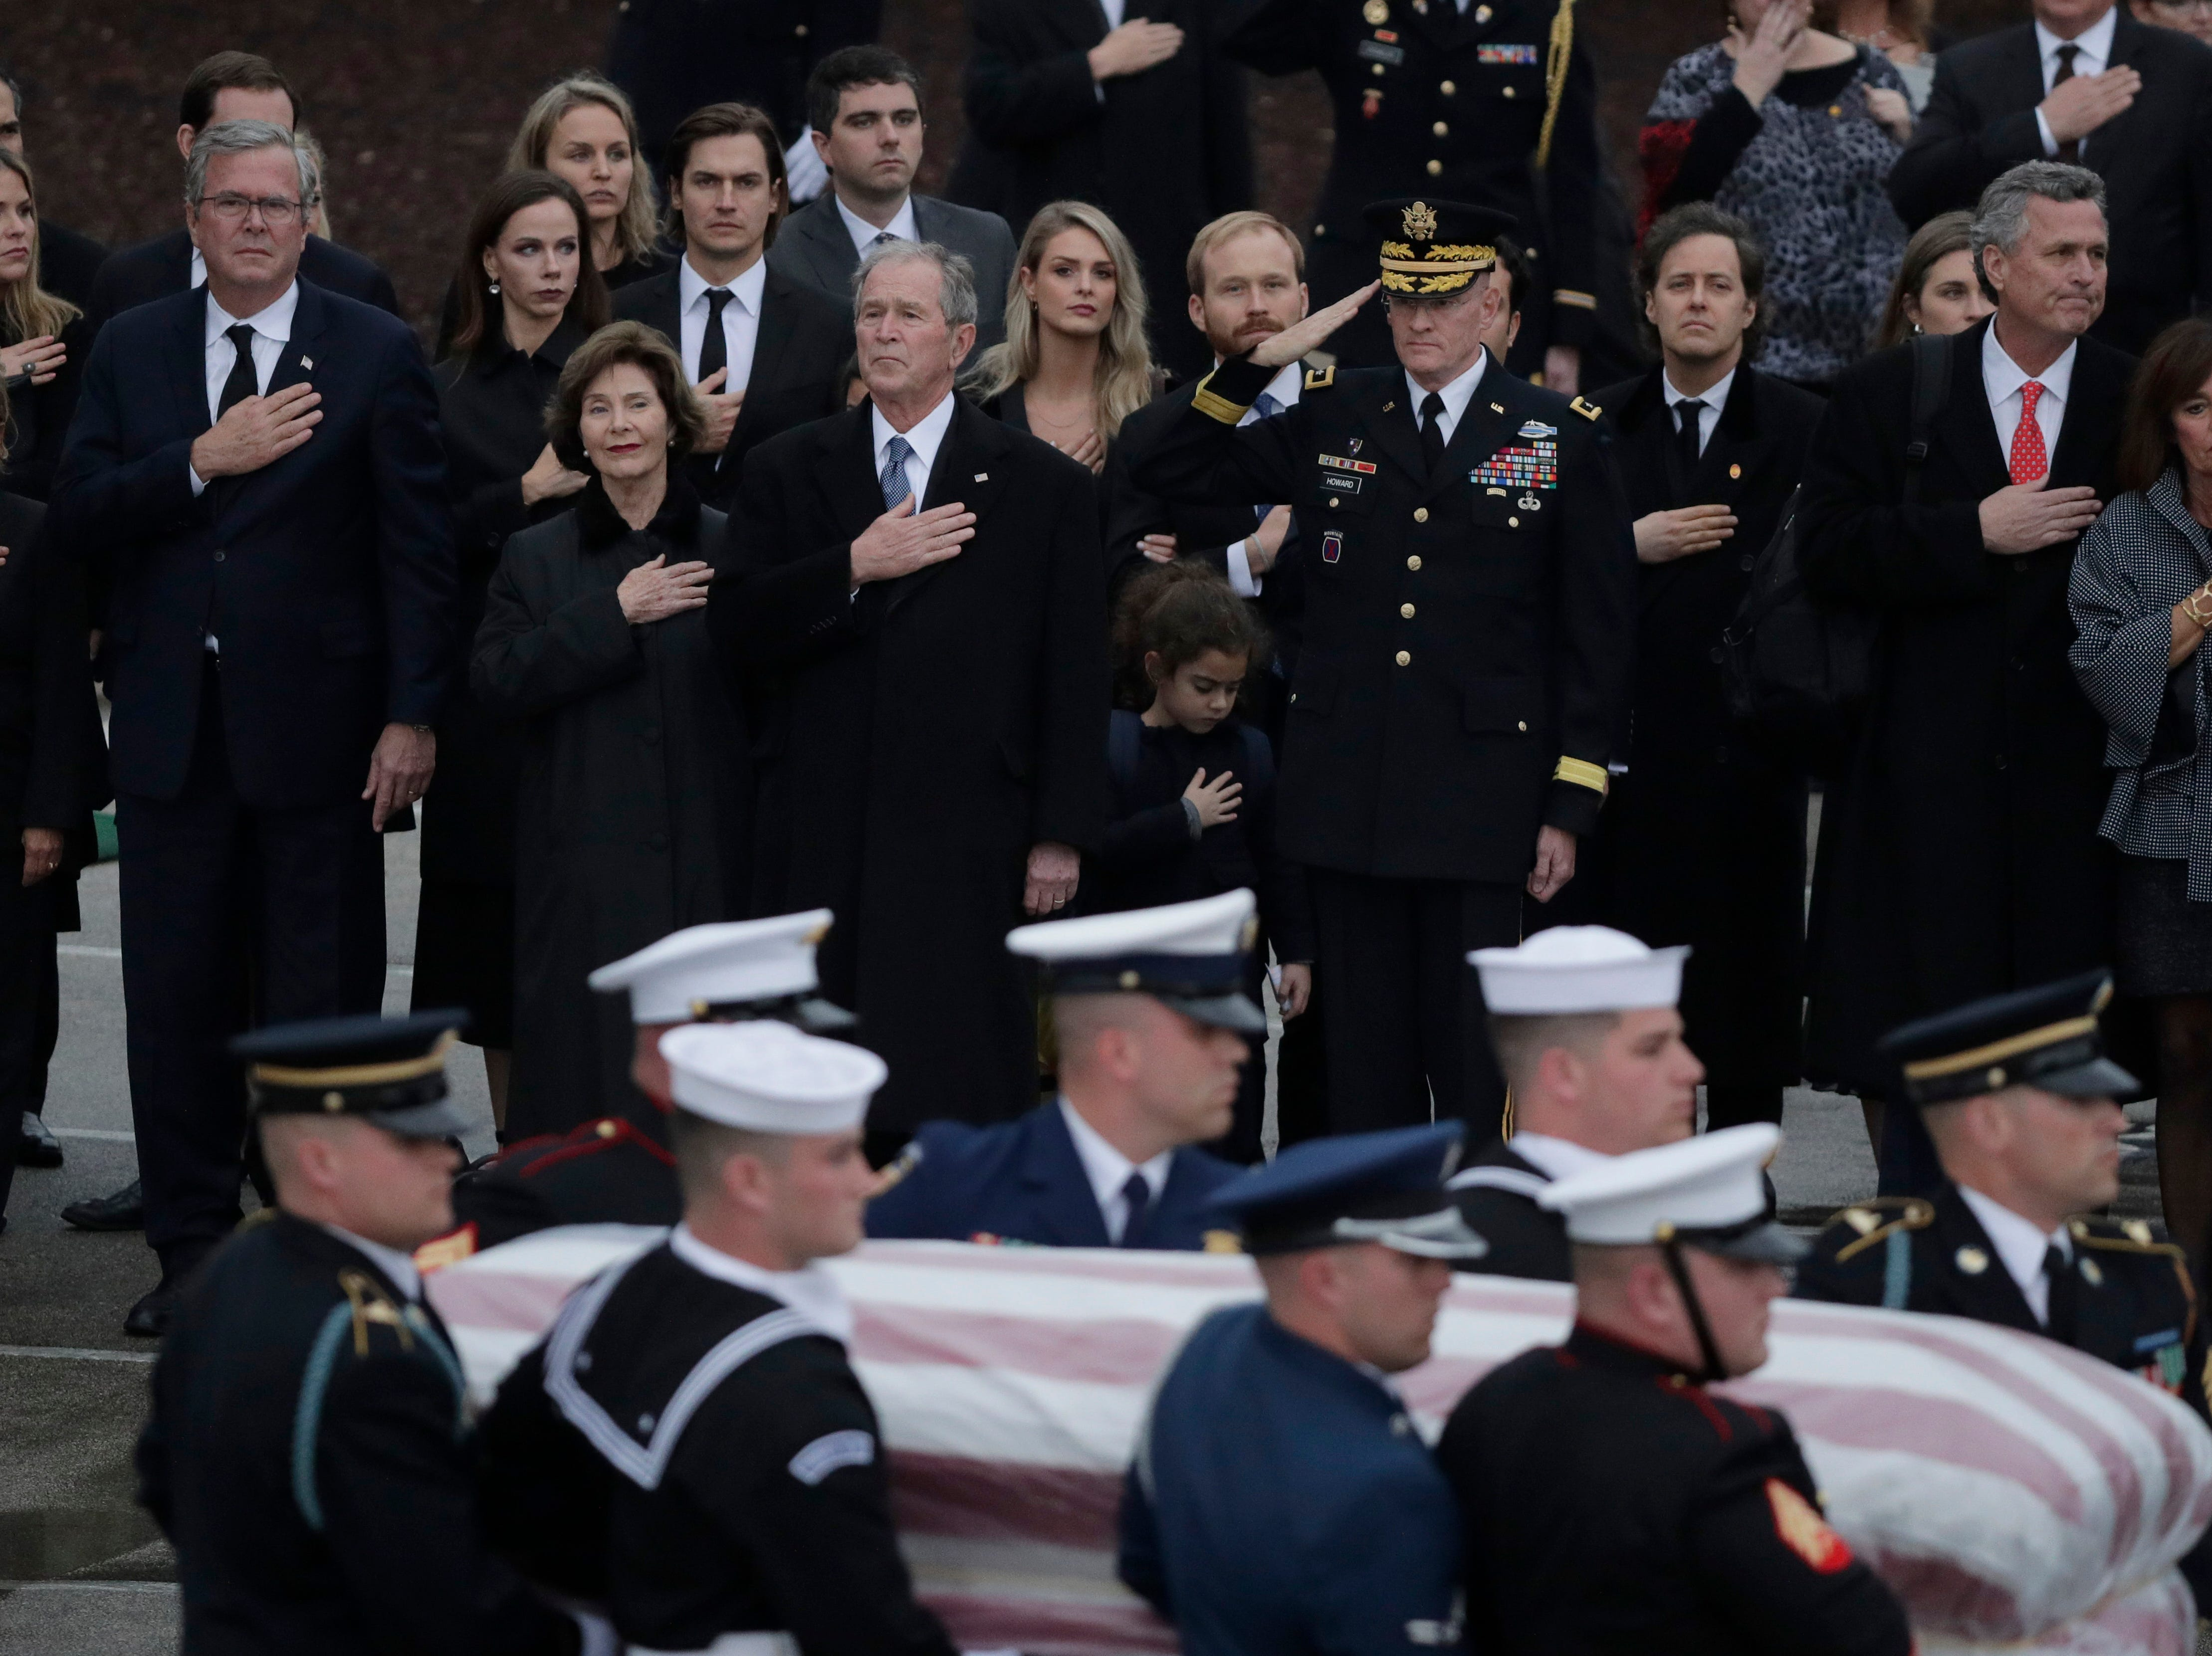 Former Florida Gov. Jeb Bush, second from left, with wife Columba, and former President George W. Bush, center, with wife Laura, and other family members, watch as the flag-draped casket of former President George H.W. Bush is carried by a joint services military honor guard after if arrived by train for burial at the George Bush Presidential Library, Thursday, Dec. 6, 2018, in College Station.